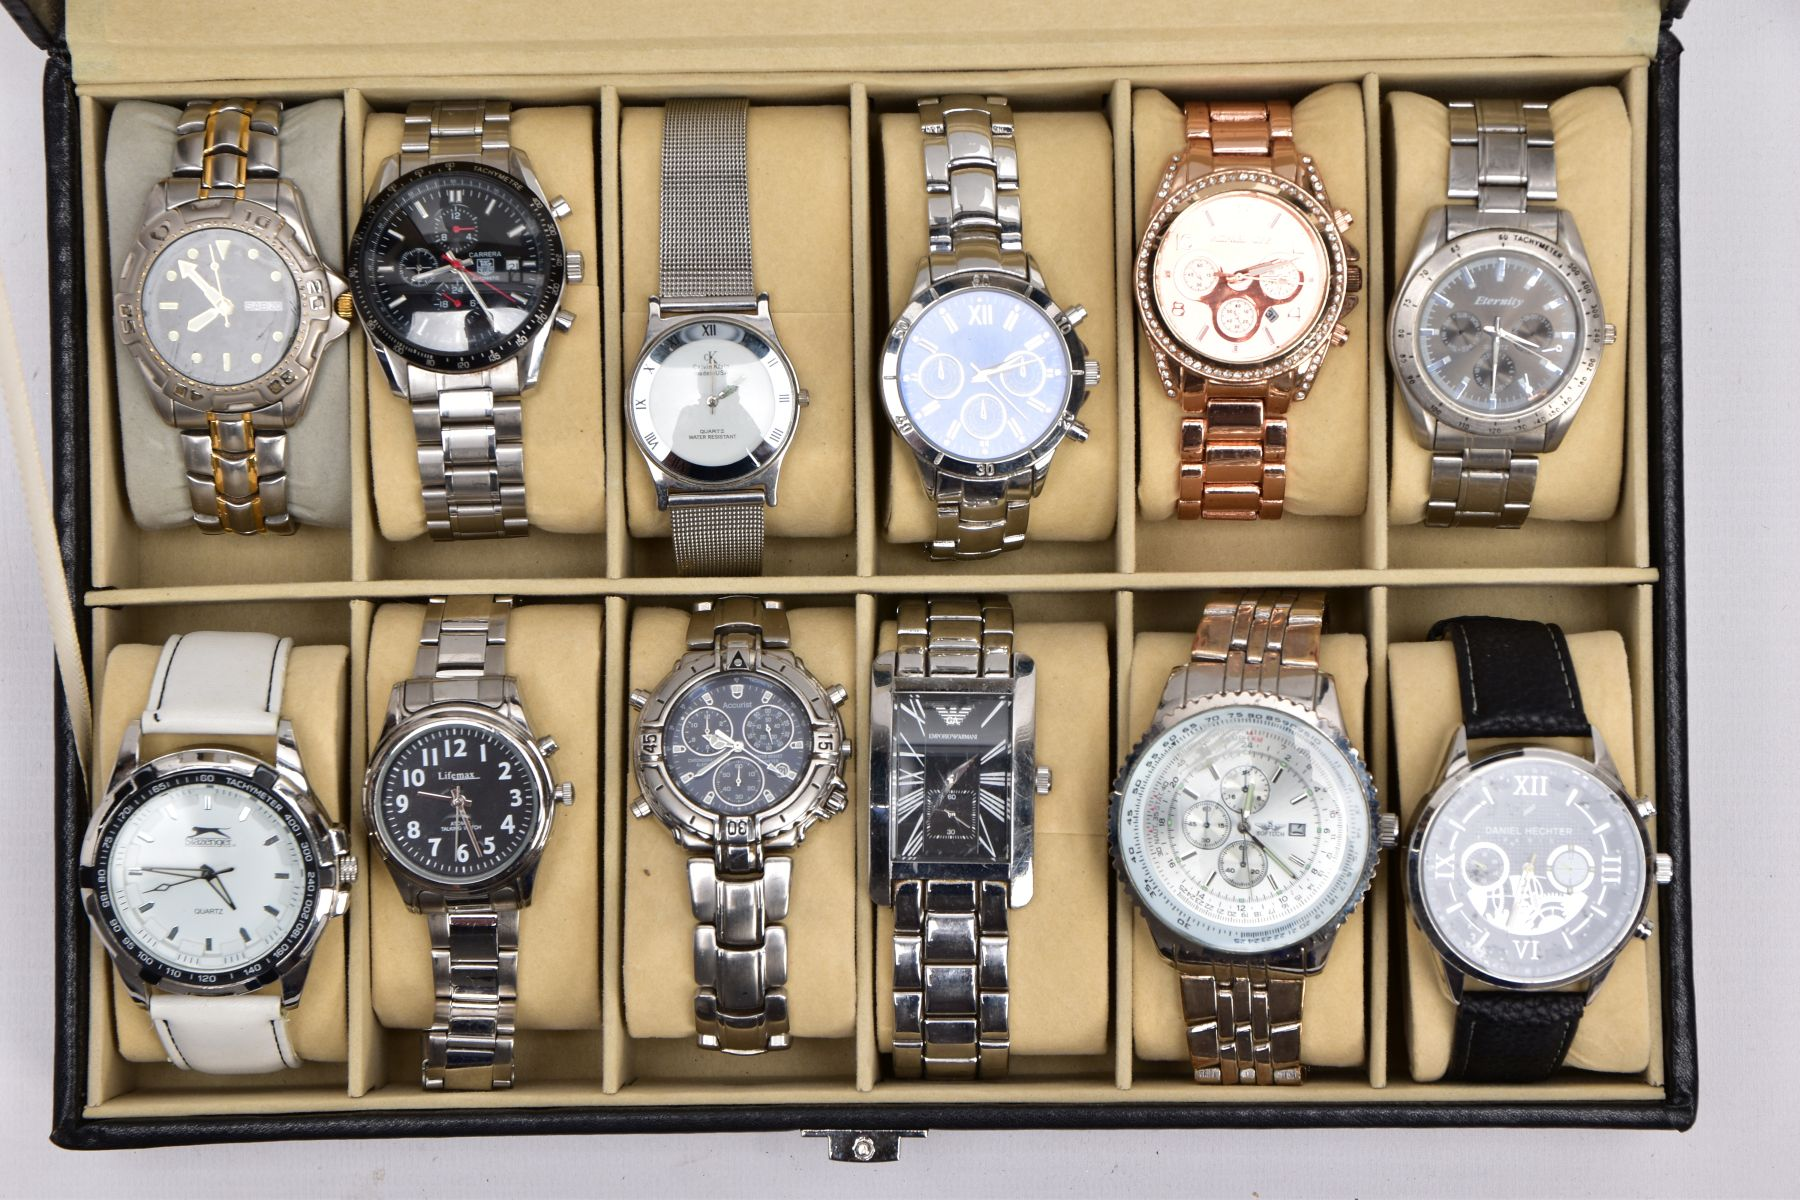 A WATCH DISPLAY CASE WITH WATCHES, a black and glass panelled watch display case with twelve watches